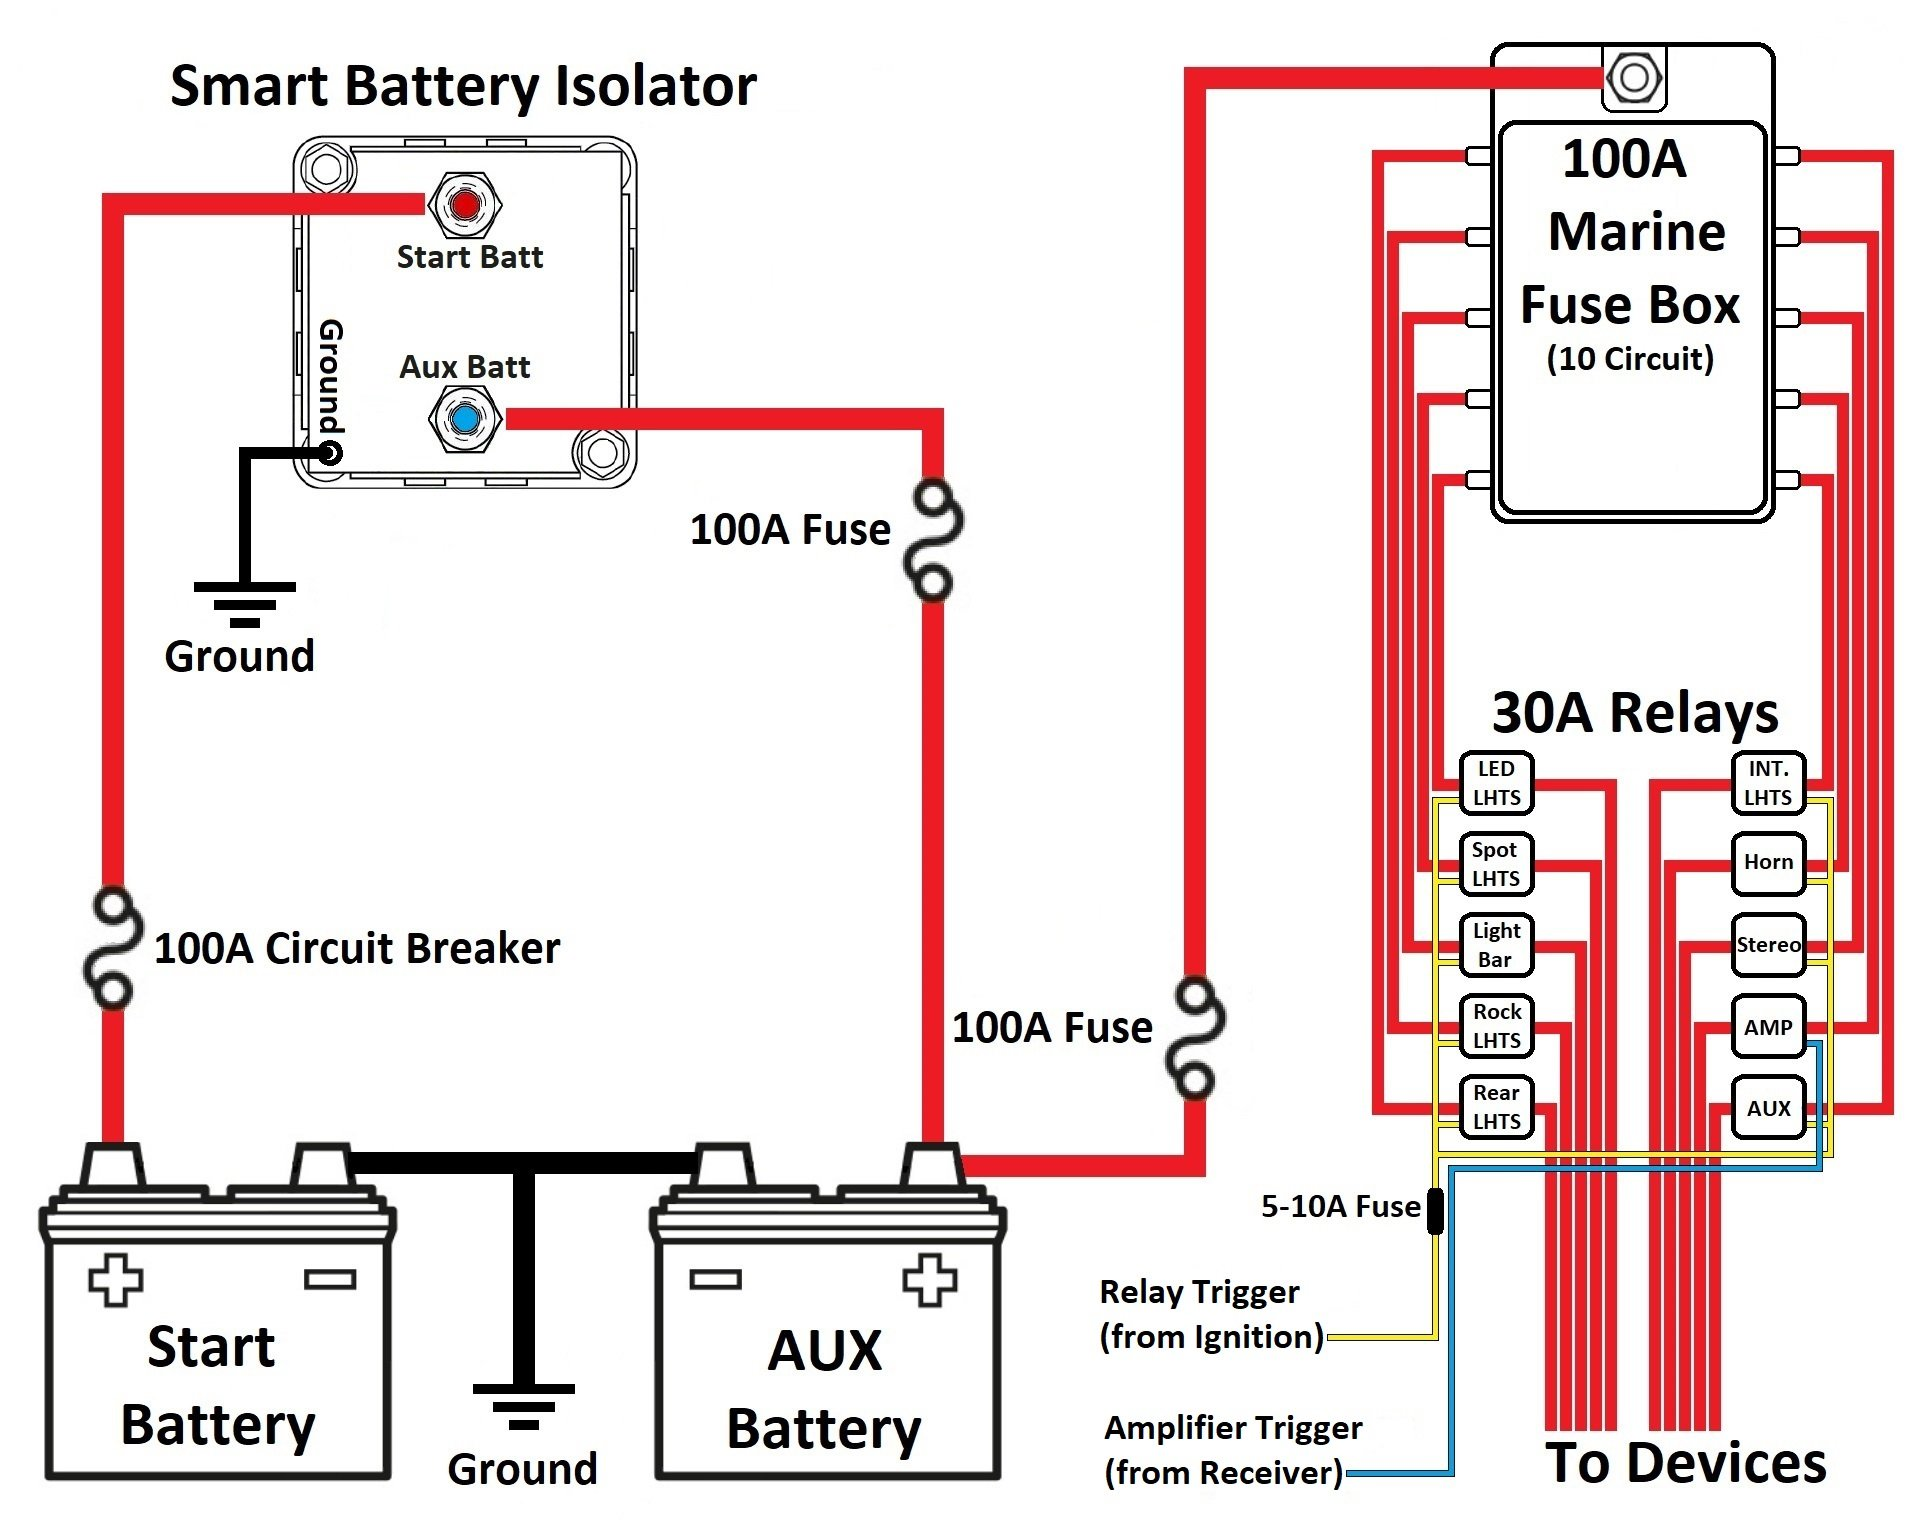 Wiring Diagram Battery - Schematics Data Wiring Diagrams • on kill switch wiring diagram, alternator wiring diagram, electric choke wiring diagram, mini starter wiring diagram, electric fuel pump wiring diagram,